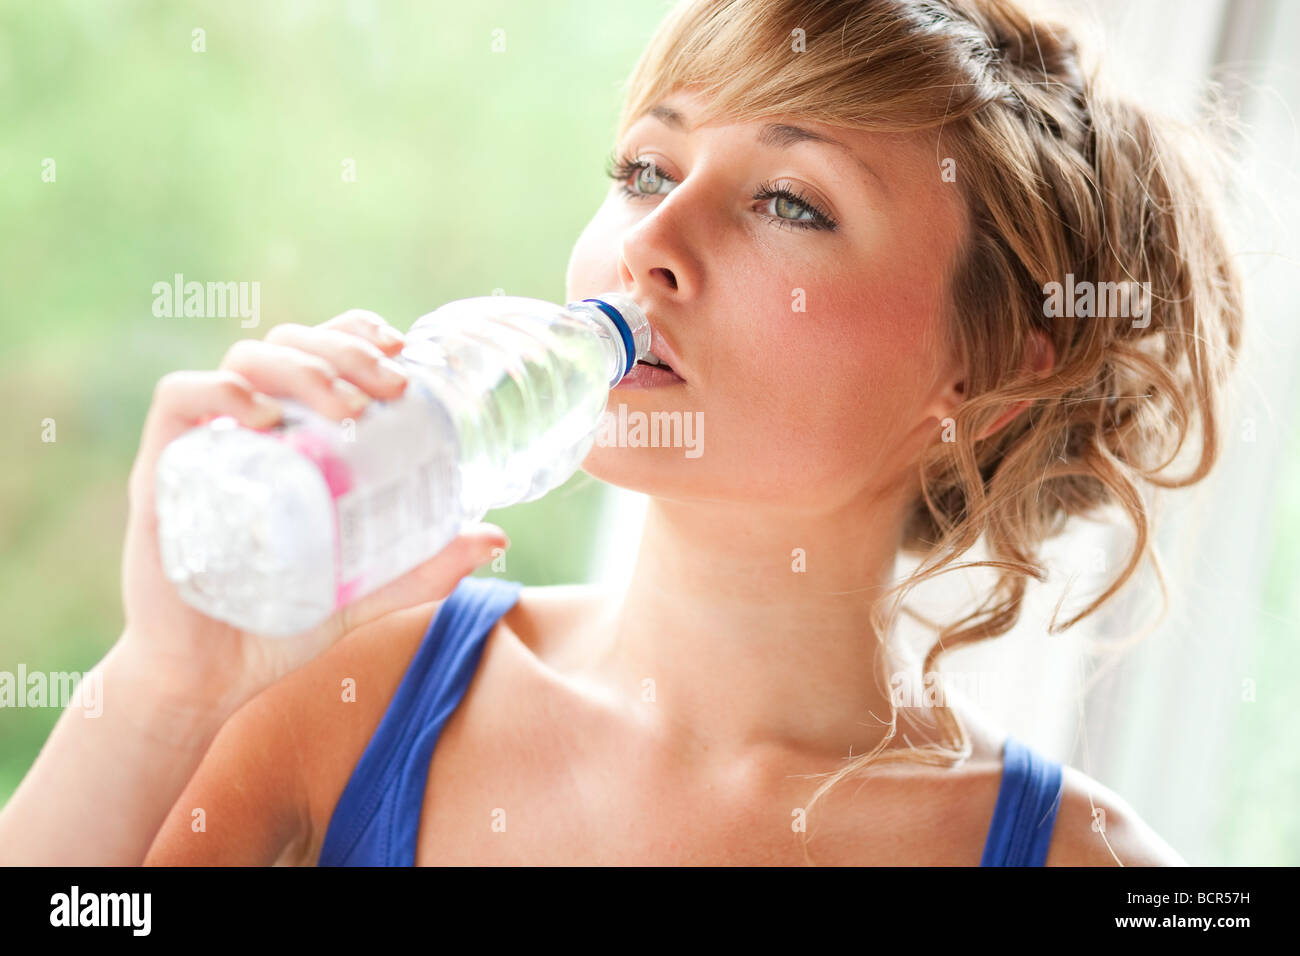 Girl drinking glass of water Stock Photo